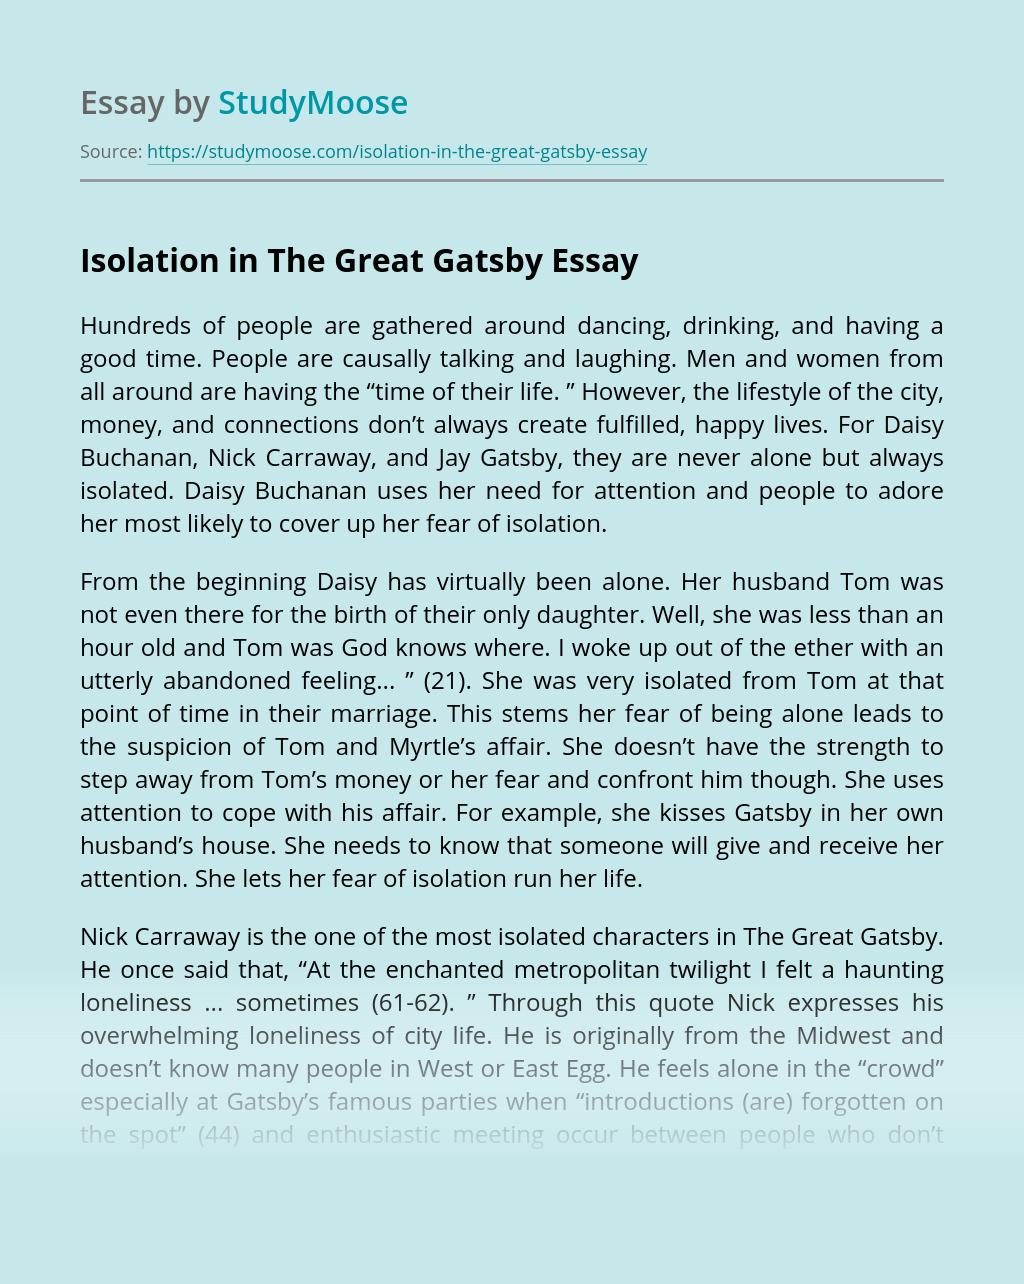 Isolation in The Great Gatsby